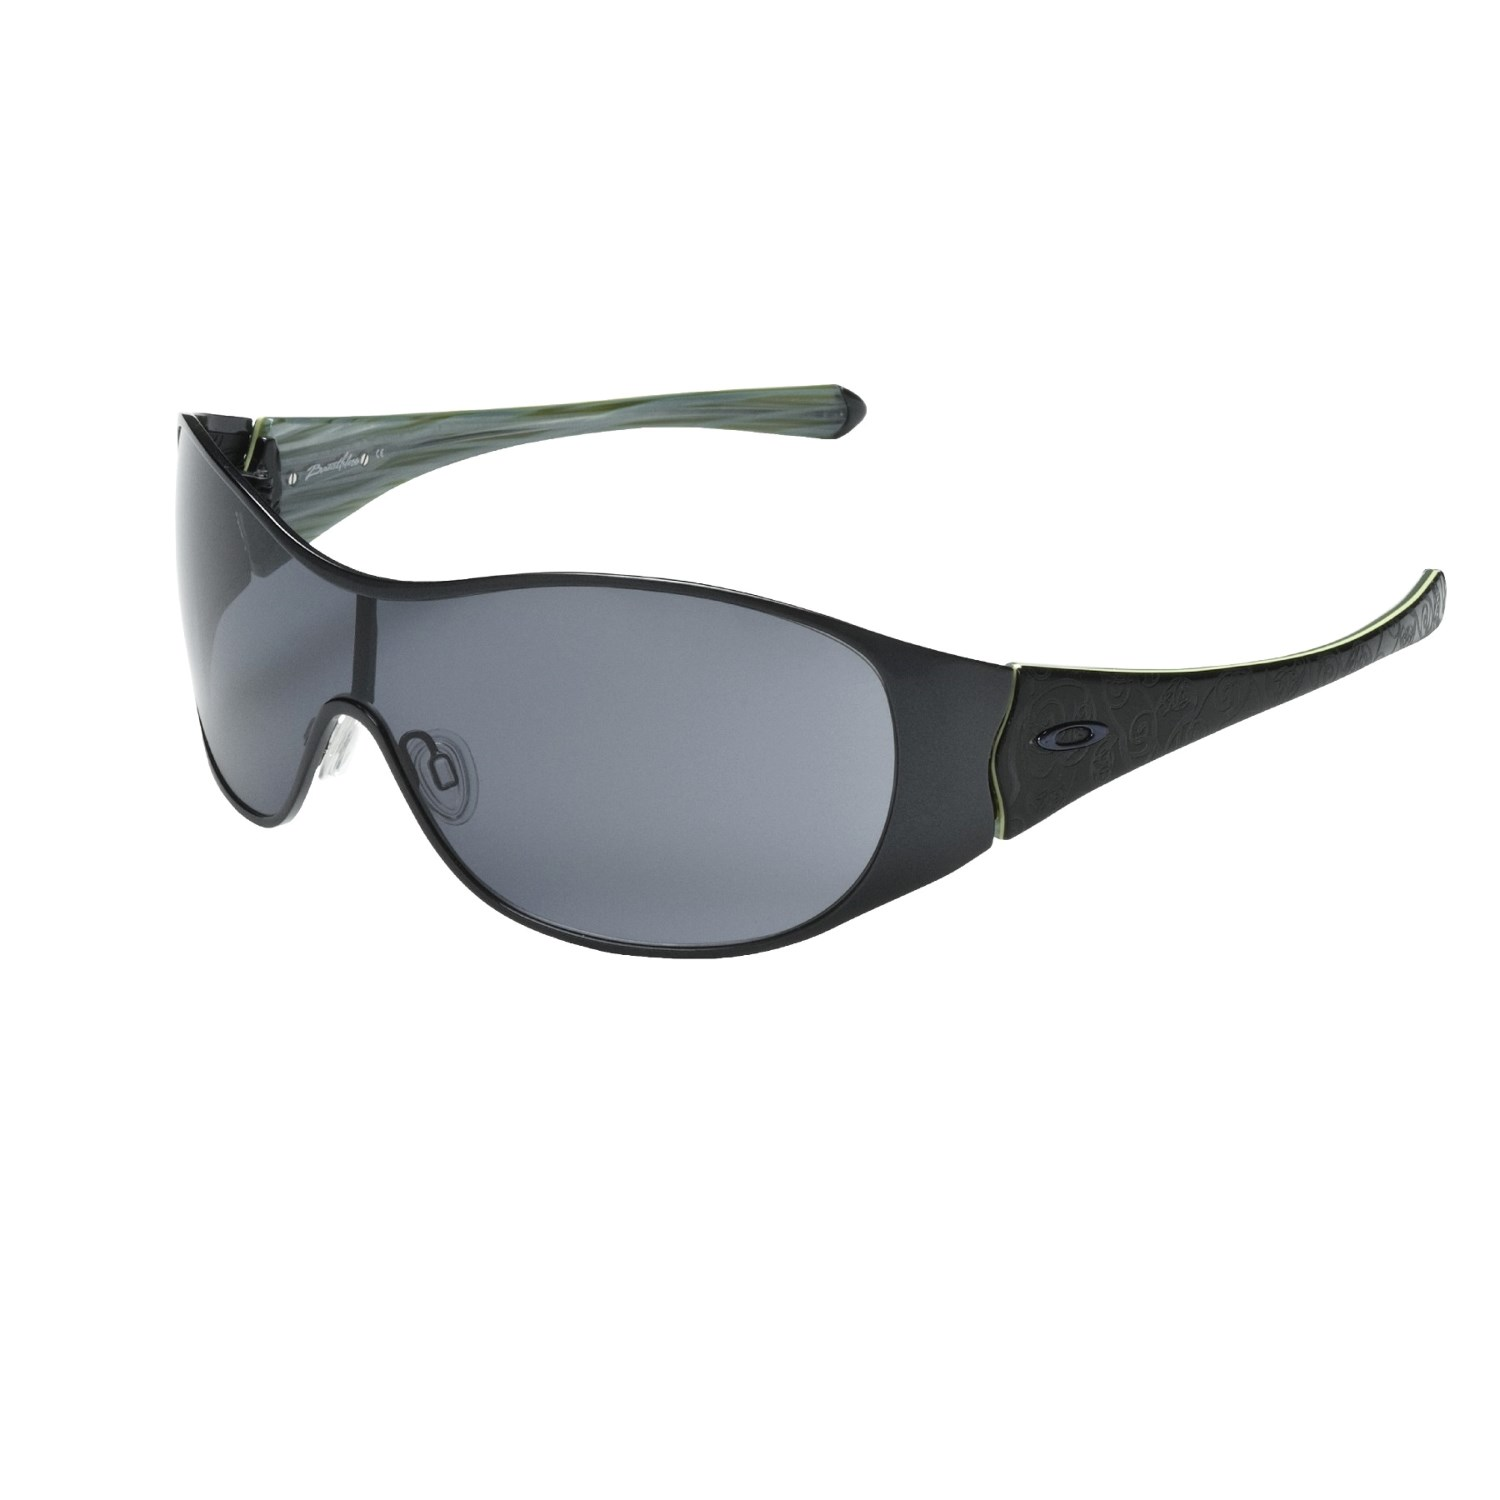 ff496fe39a Oakley Breathless Sunglasses Womens « Heritage Malta